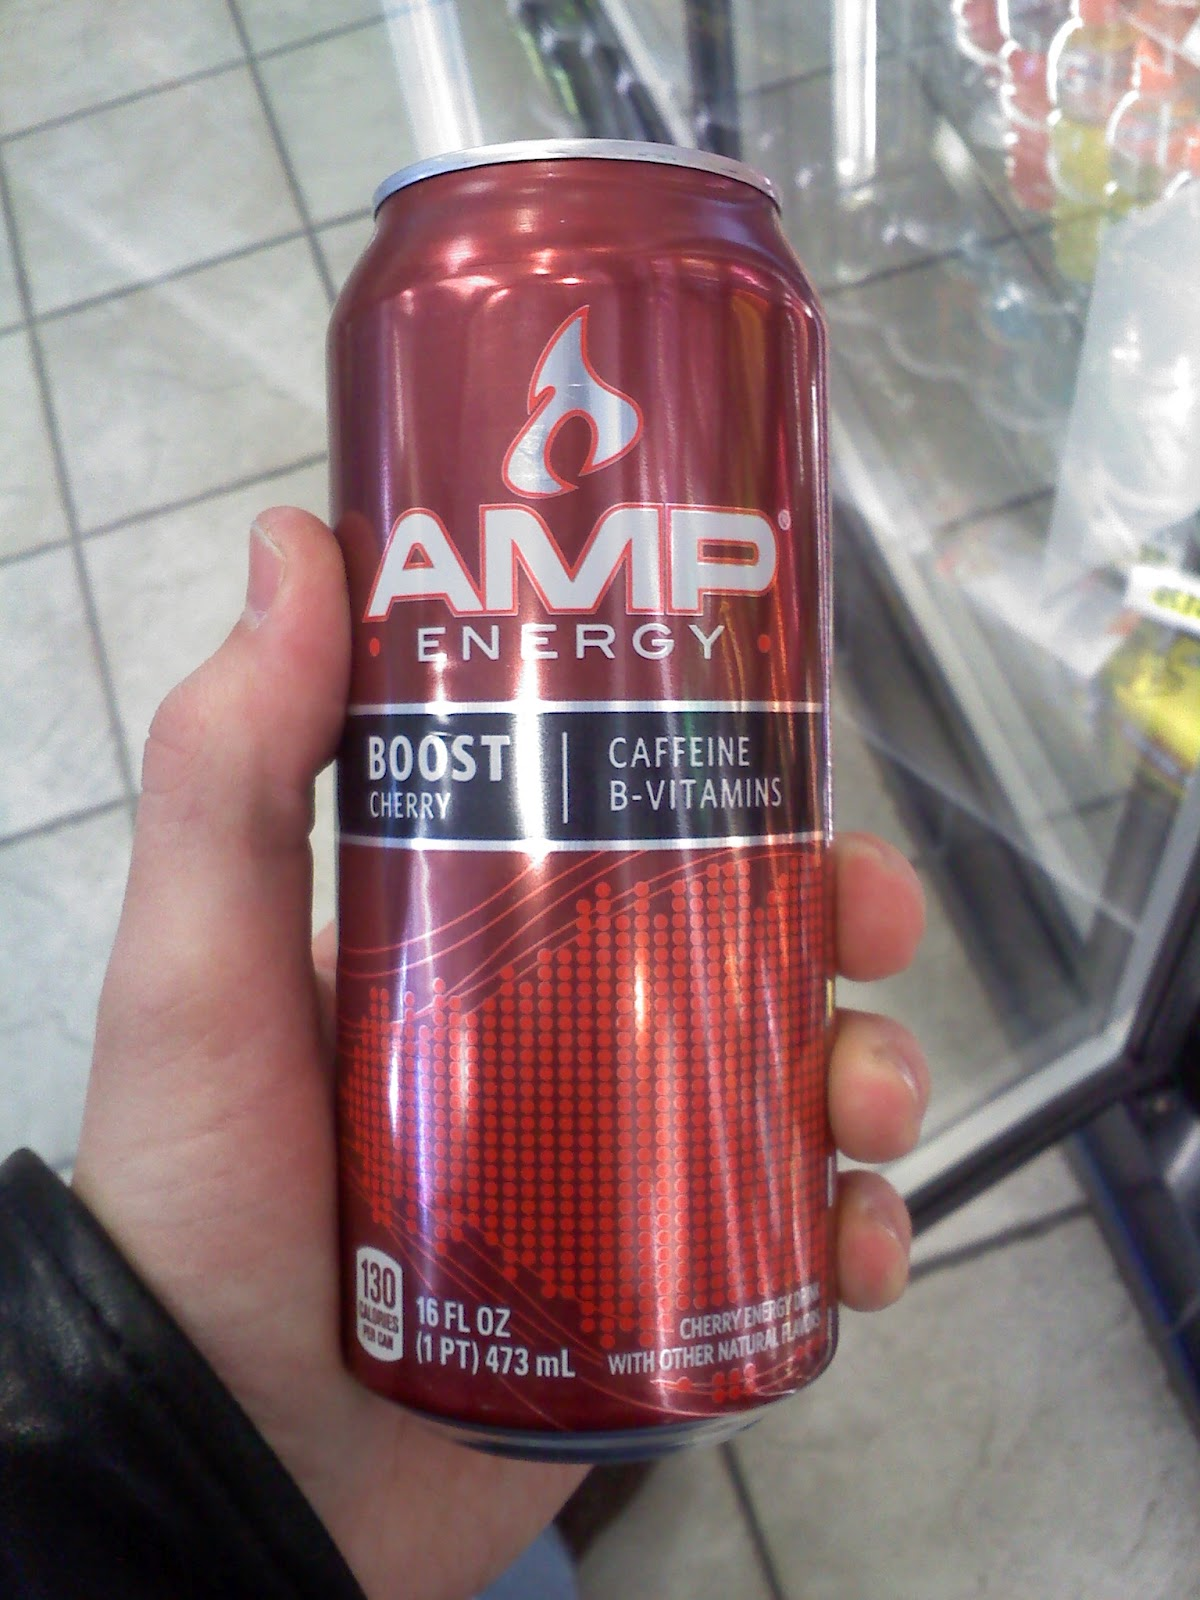 Bad- & Energie Planung Wien Caffeine Review For Amp Energy Boost Cherry